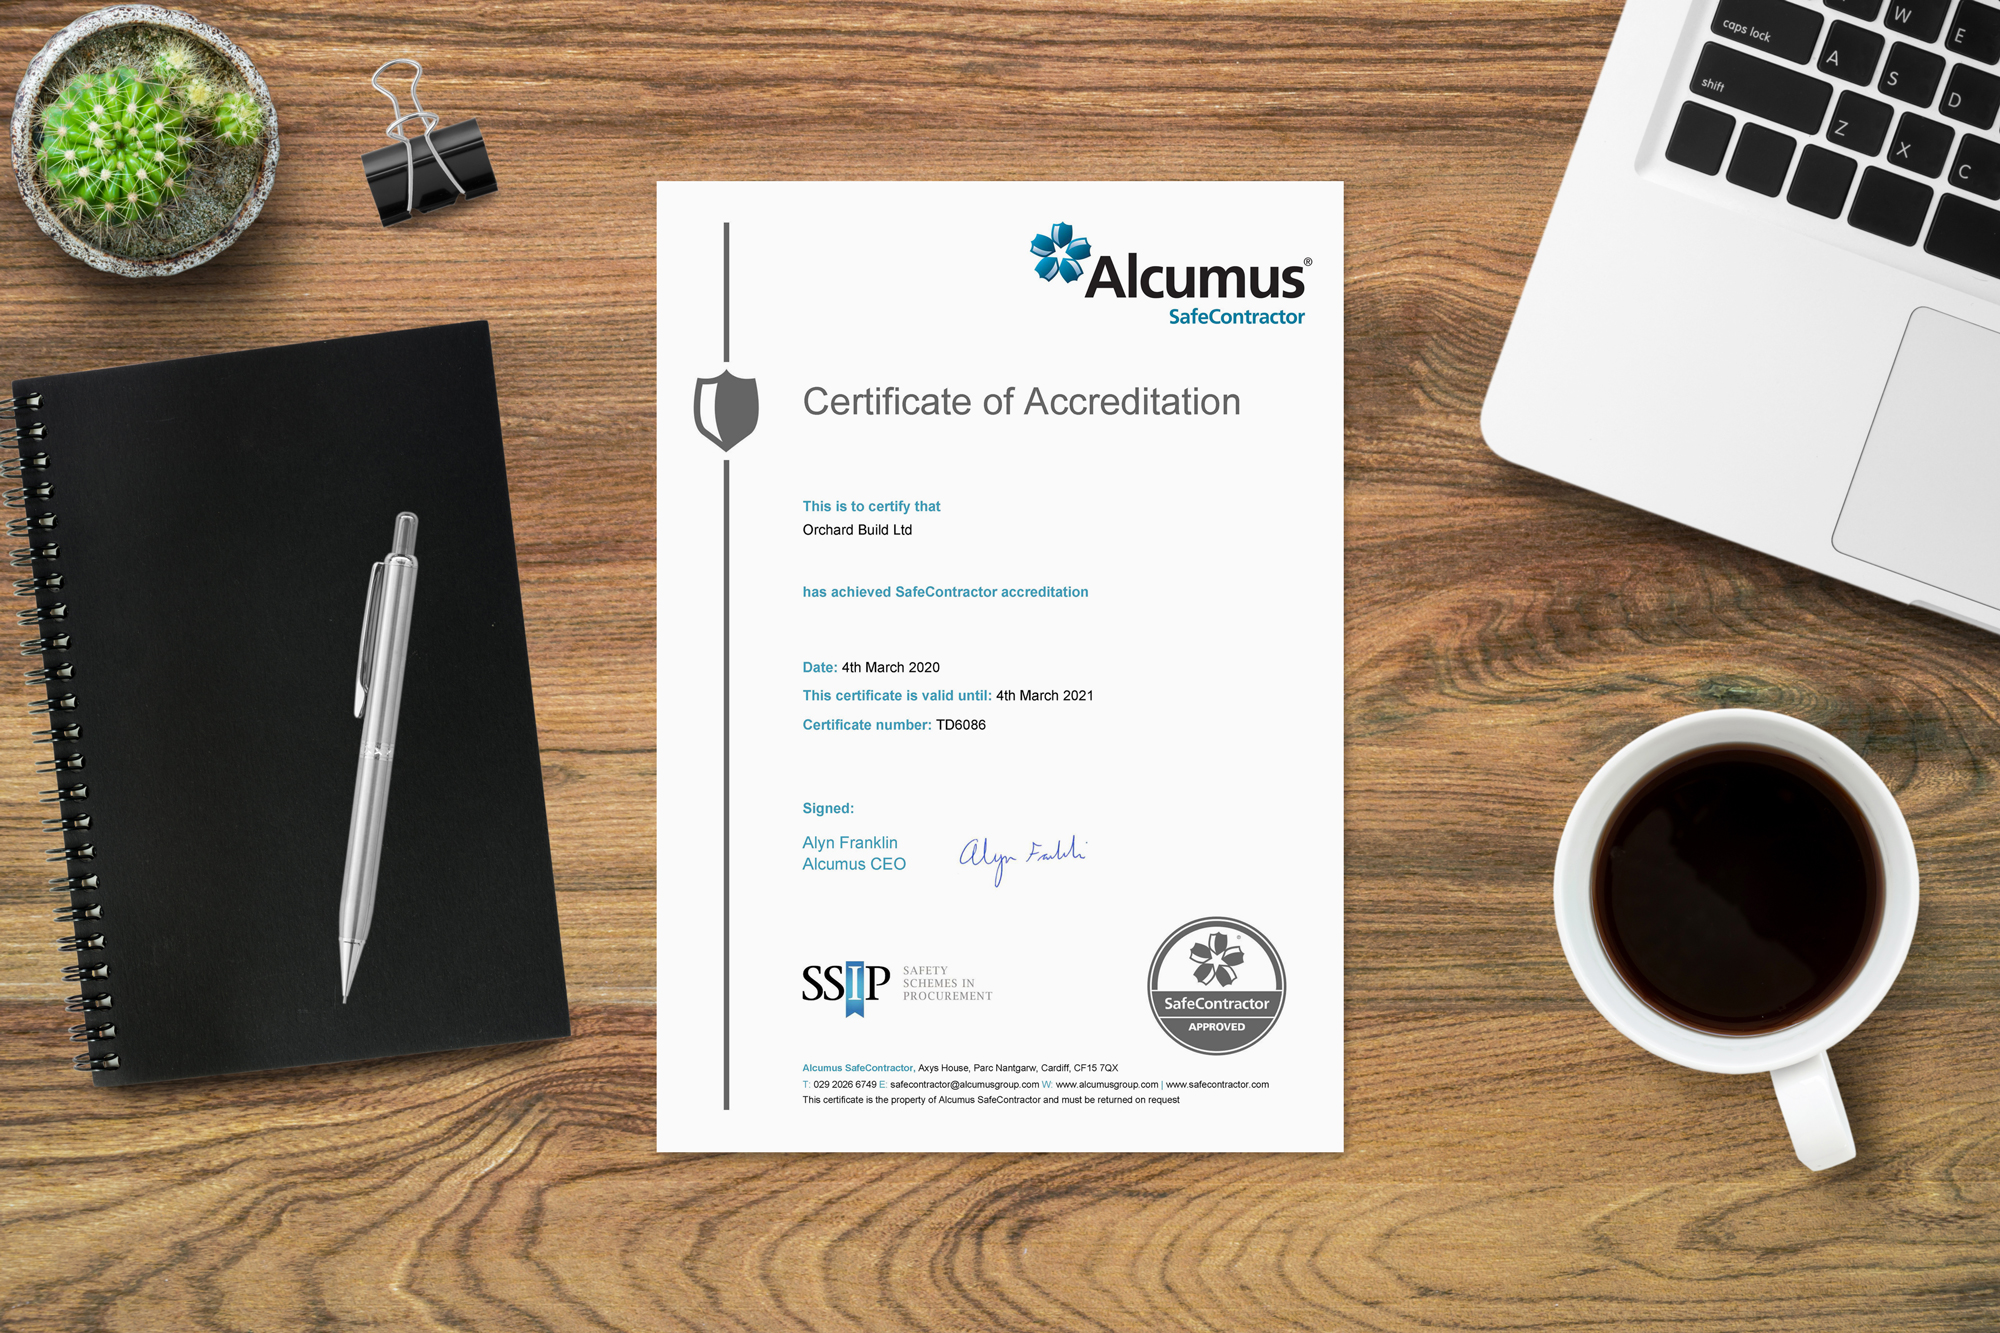 certifications of accreditation